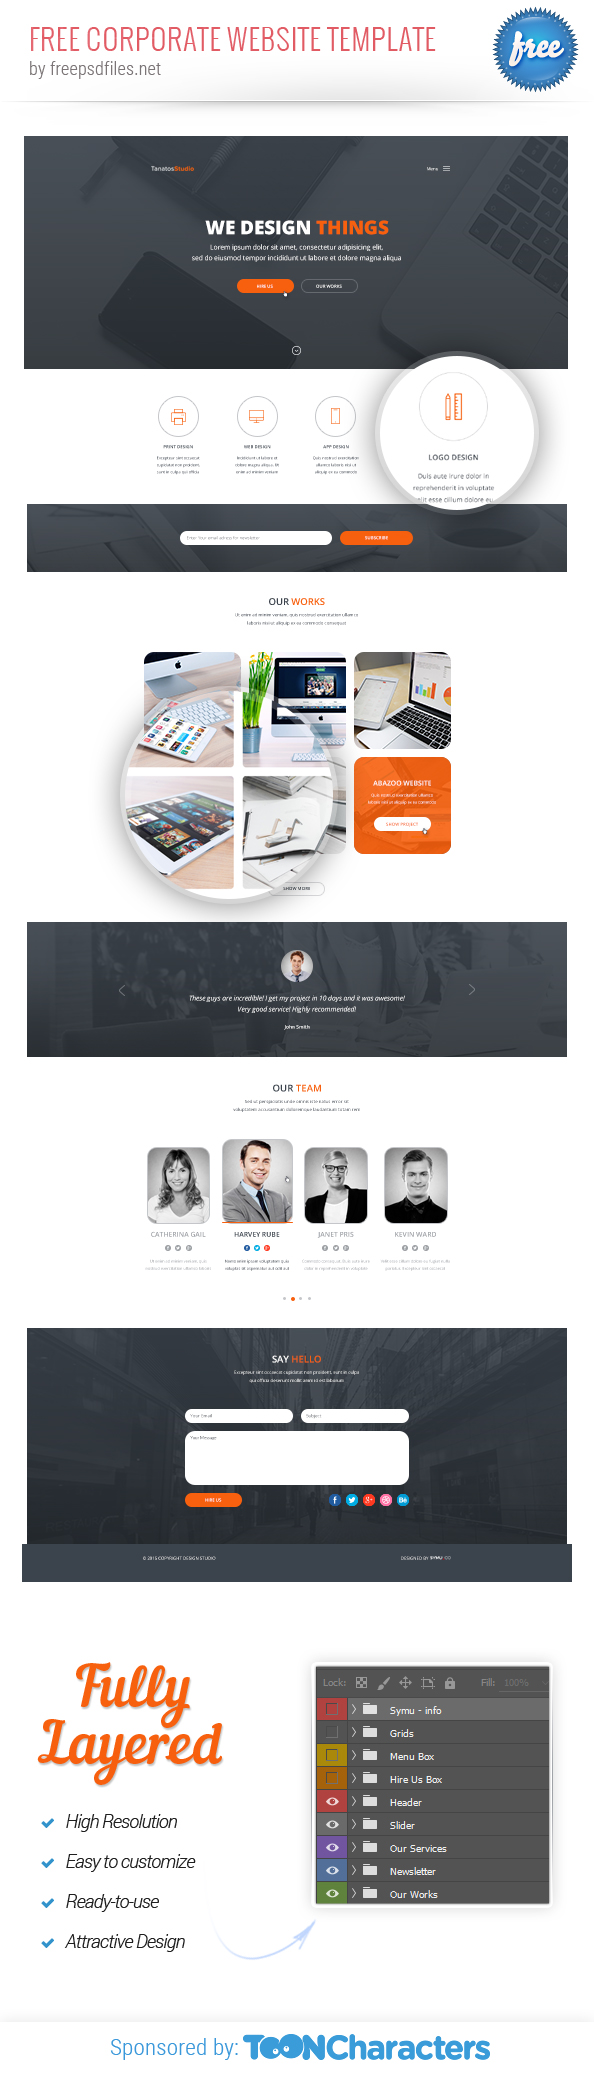 Free Corporate Website Template - Free PSD Files